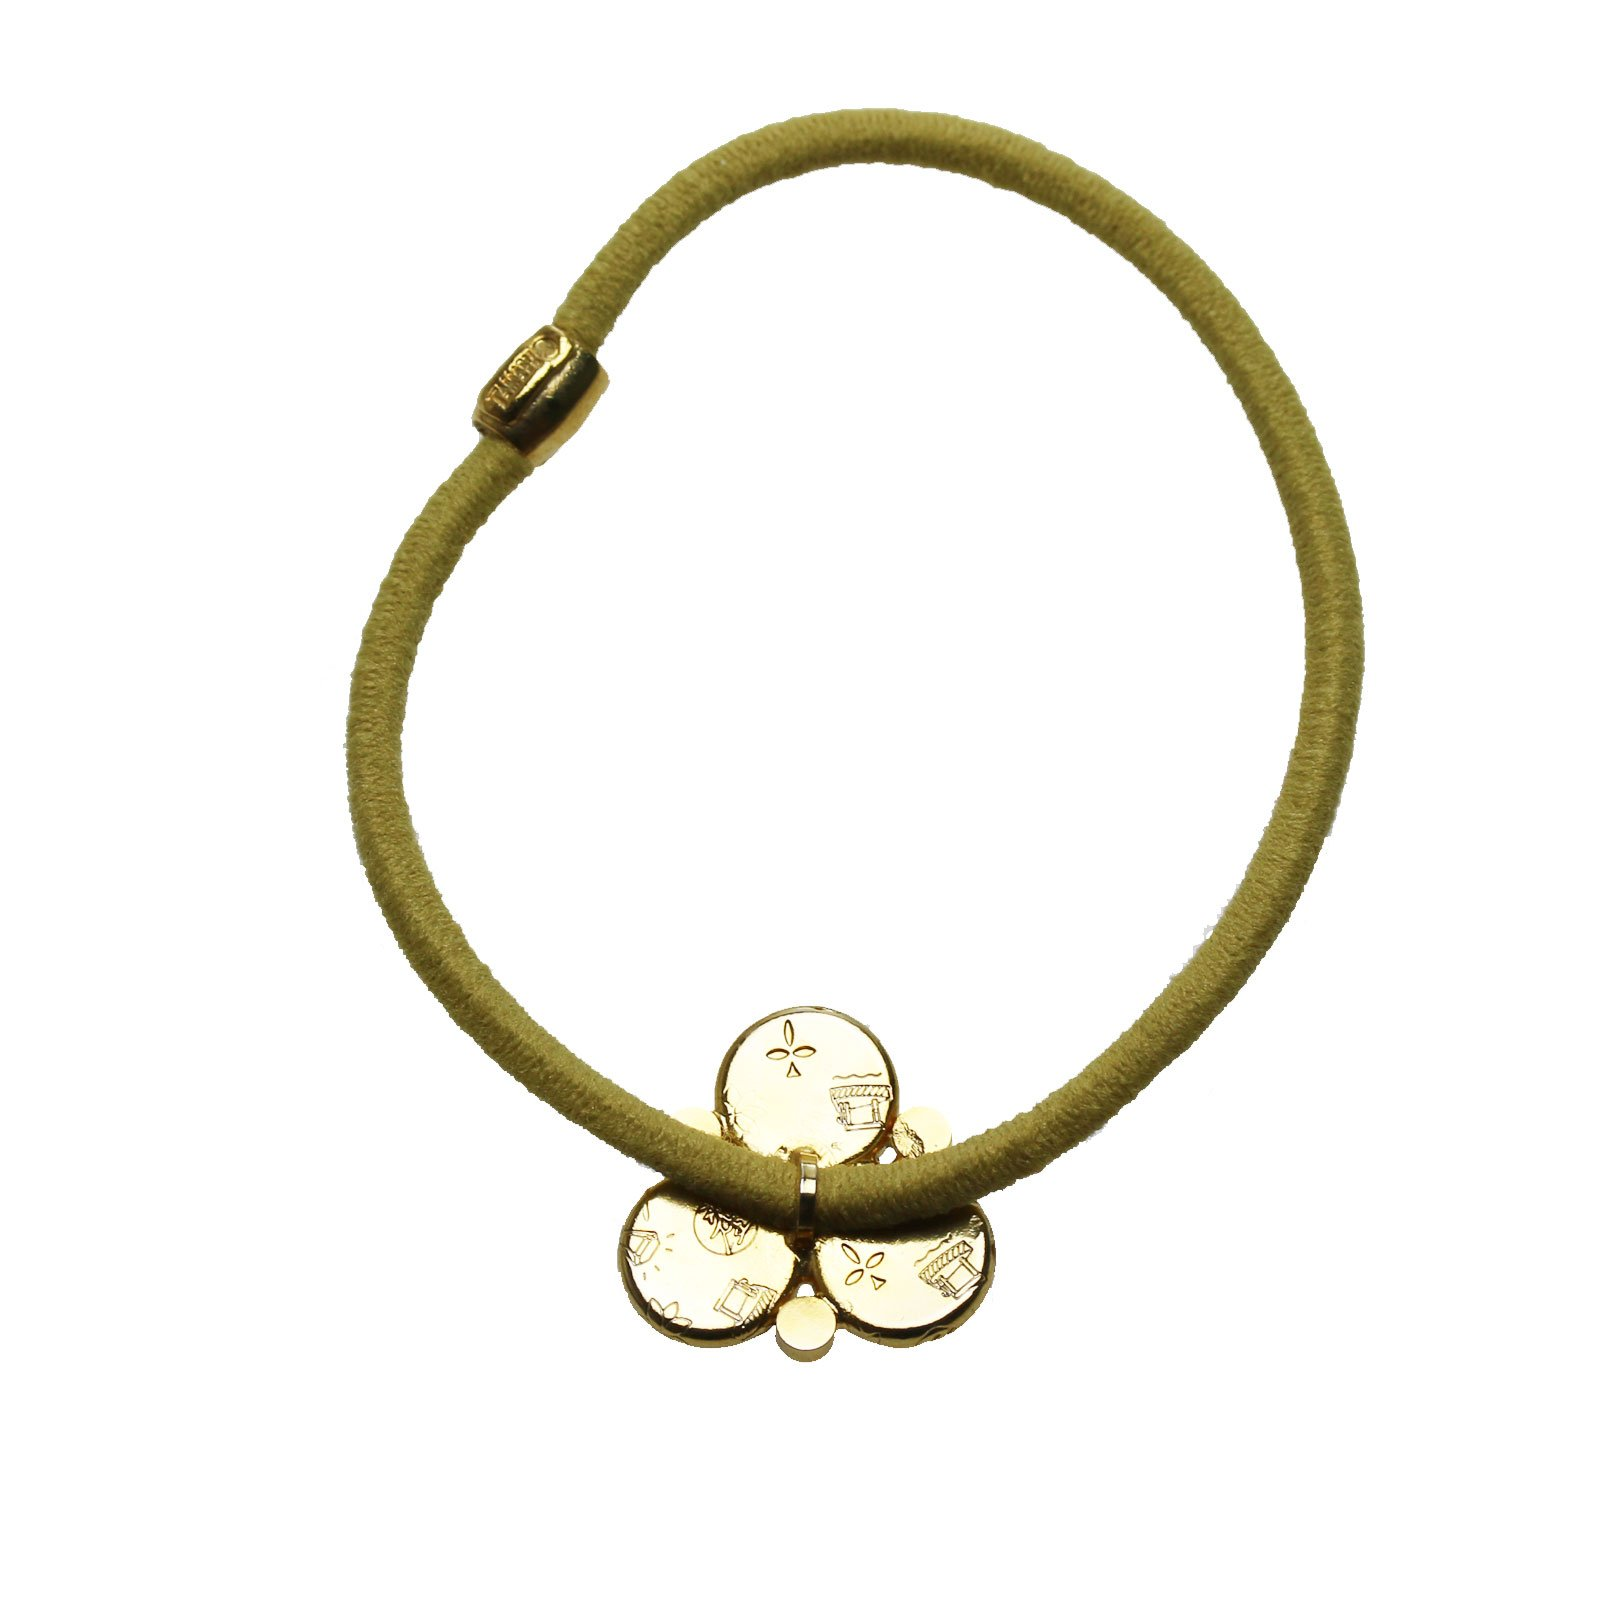 Tamarusan Ponytail Holder Small Size Pansy Yellow Green Unisex High-Grade by TAMARUSAN (Image #3)